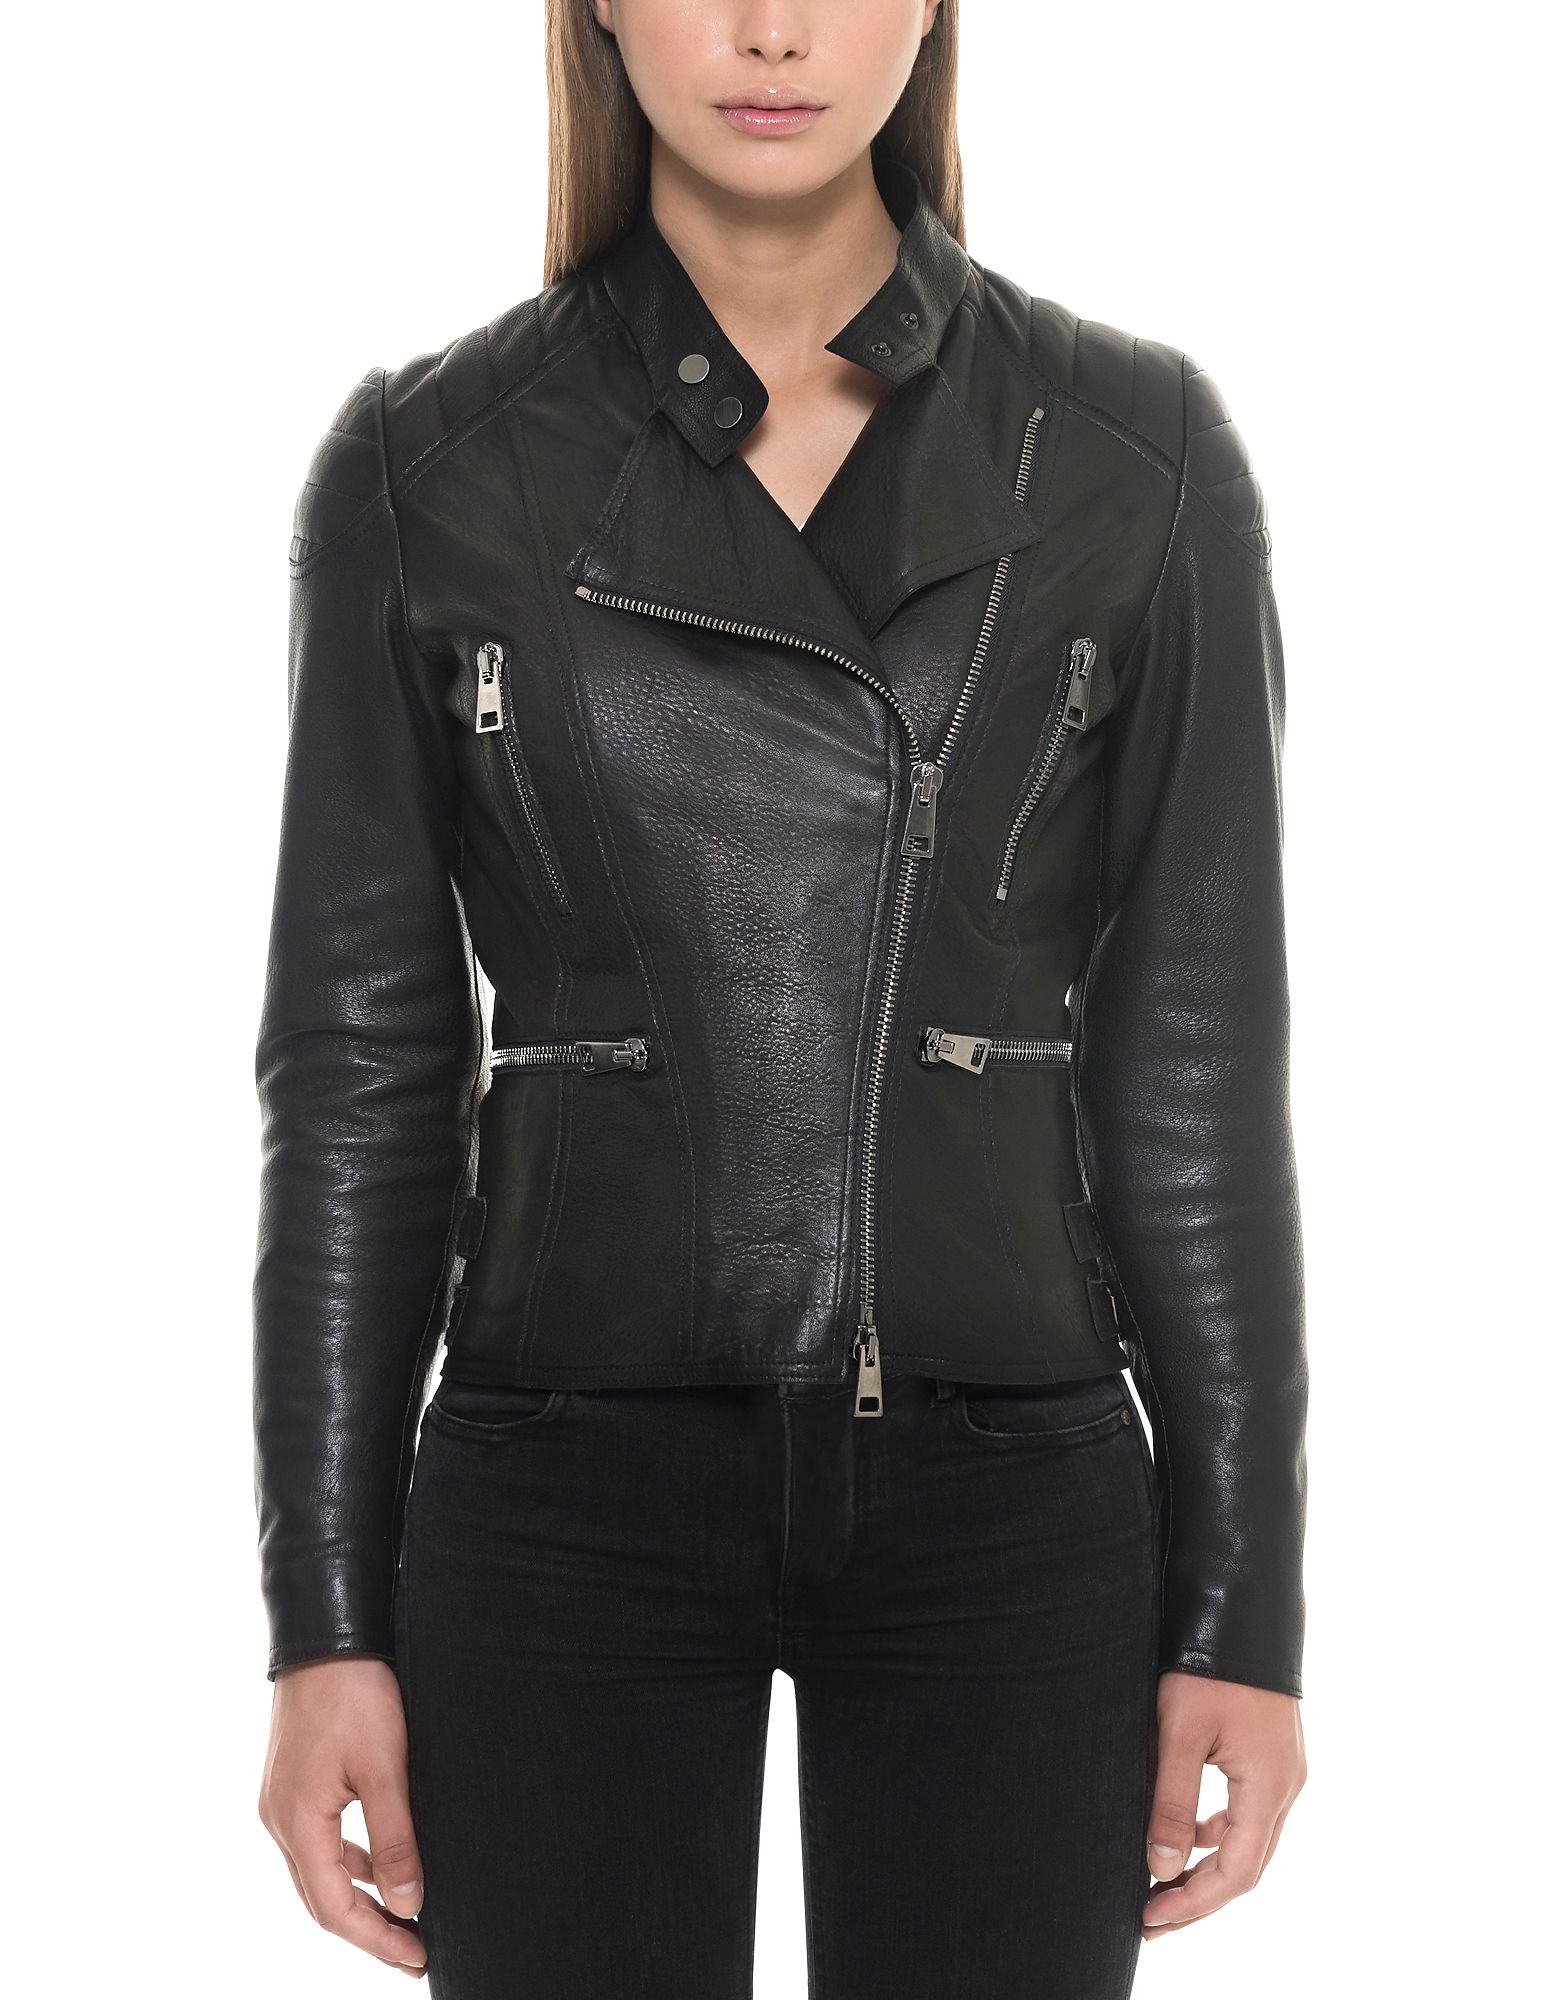 Forzieri Leather Jackets, Black Padded Leather Women's Biker Jacket